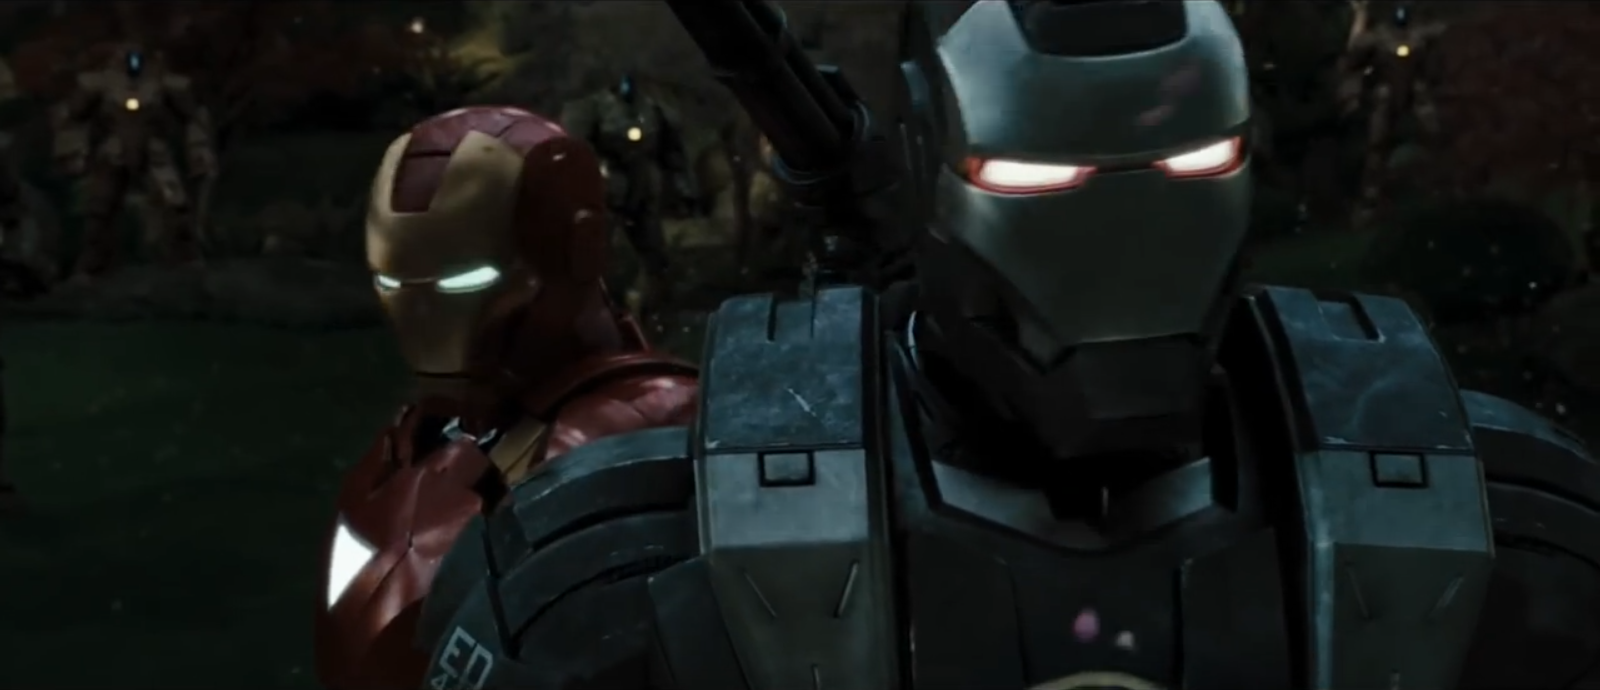 Iron Man 2 was so inconsistent because Marvel required so much in it to set up the Avengers.